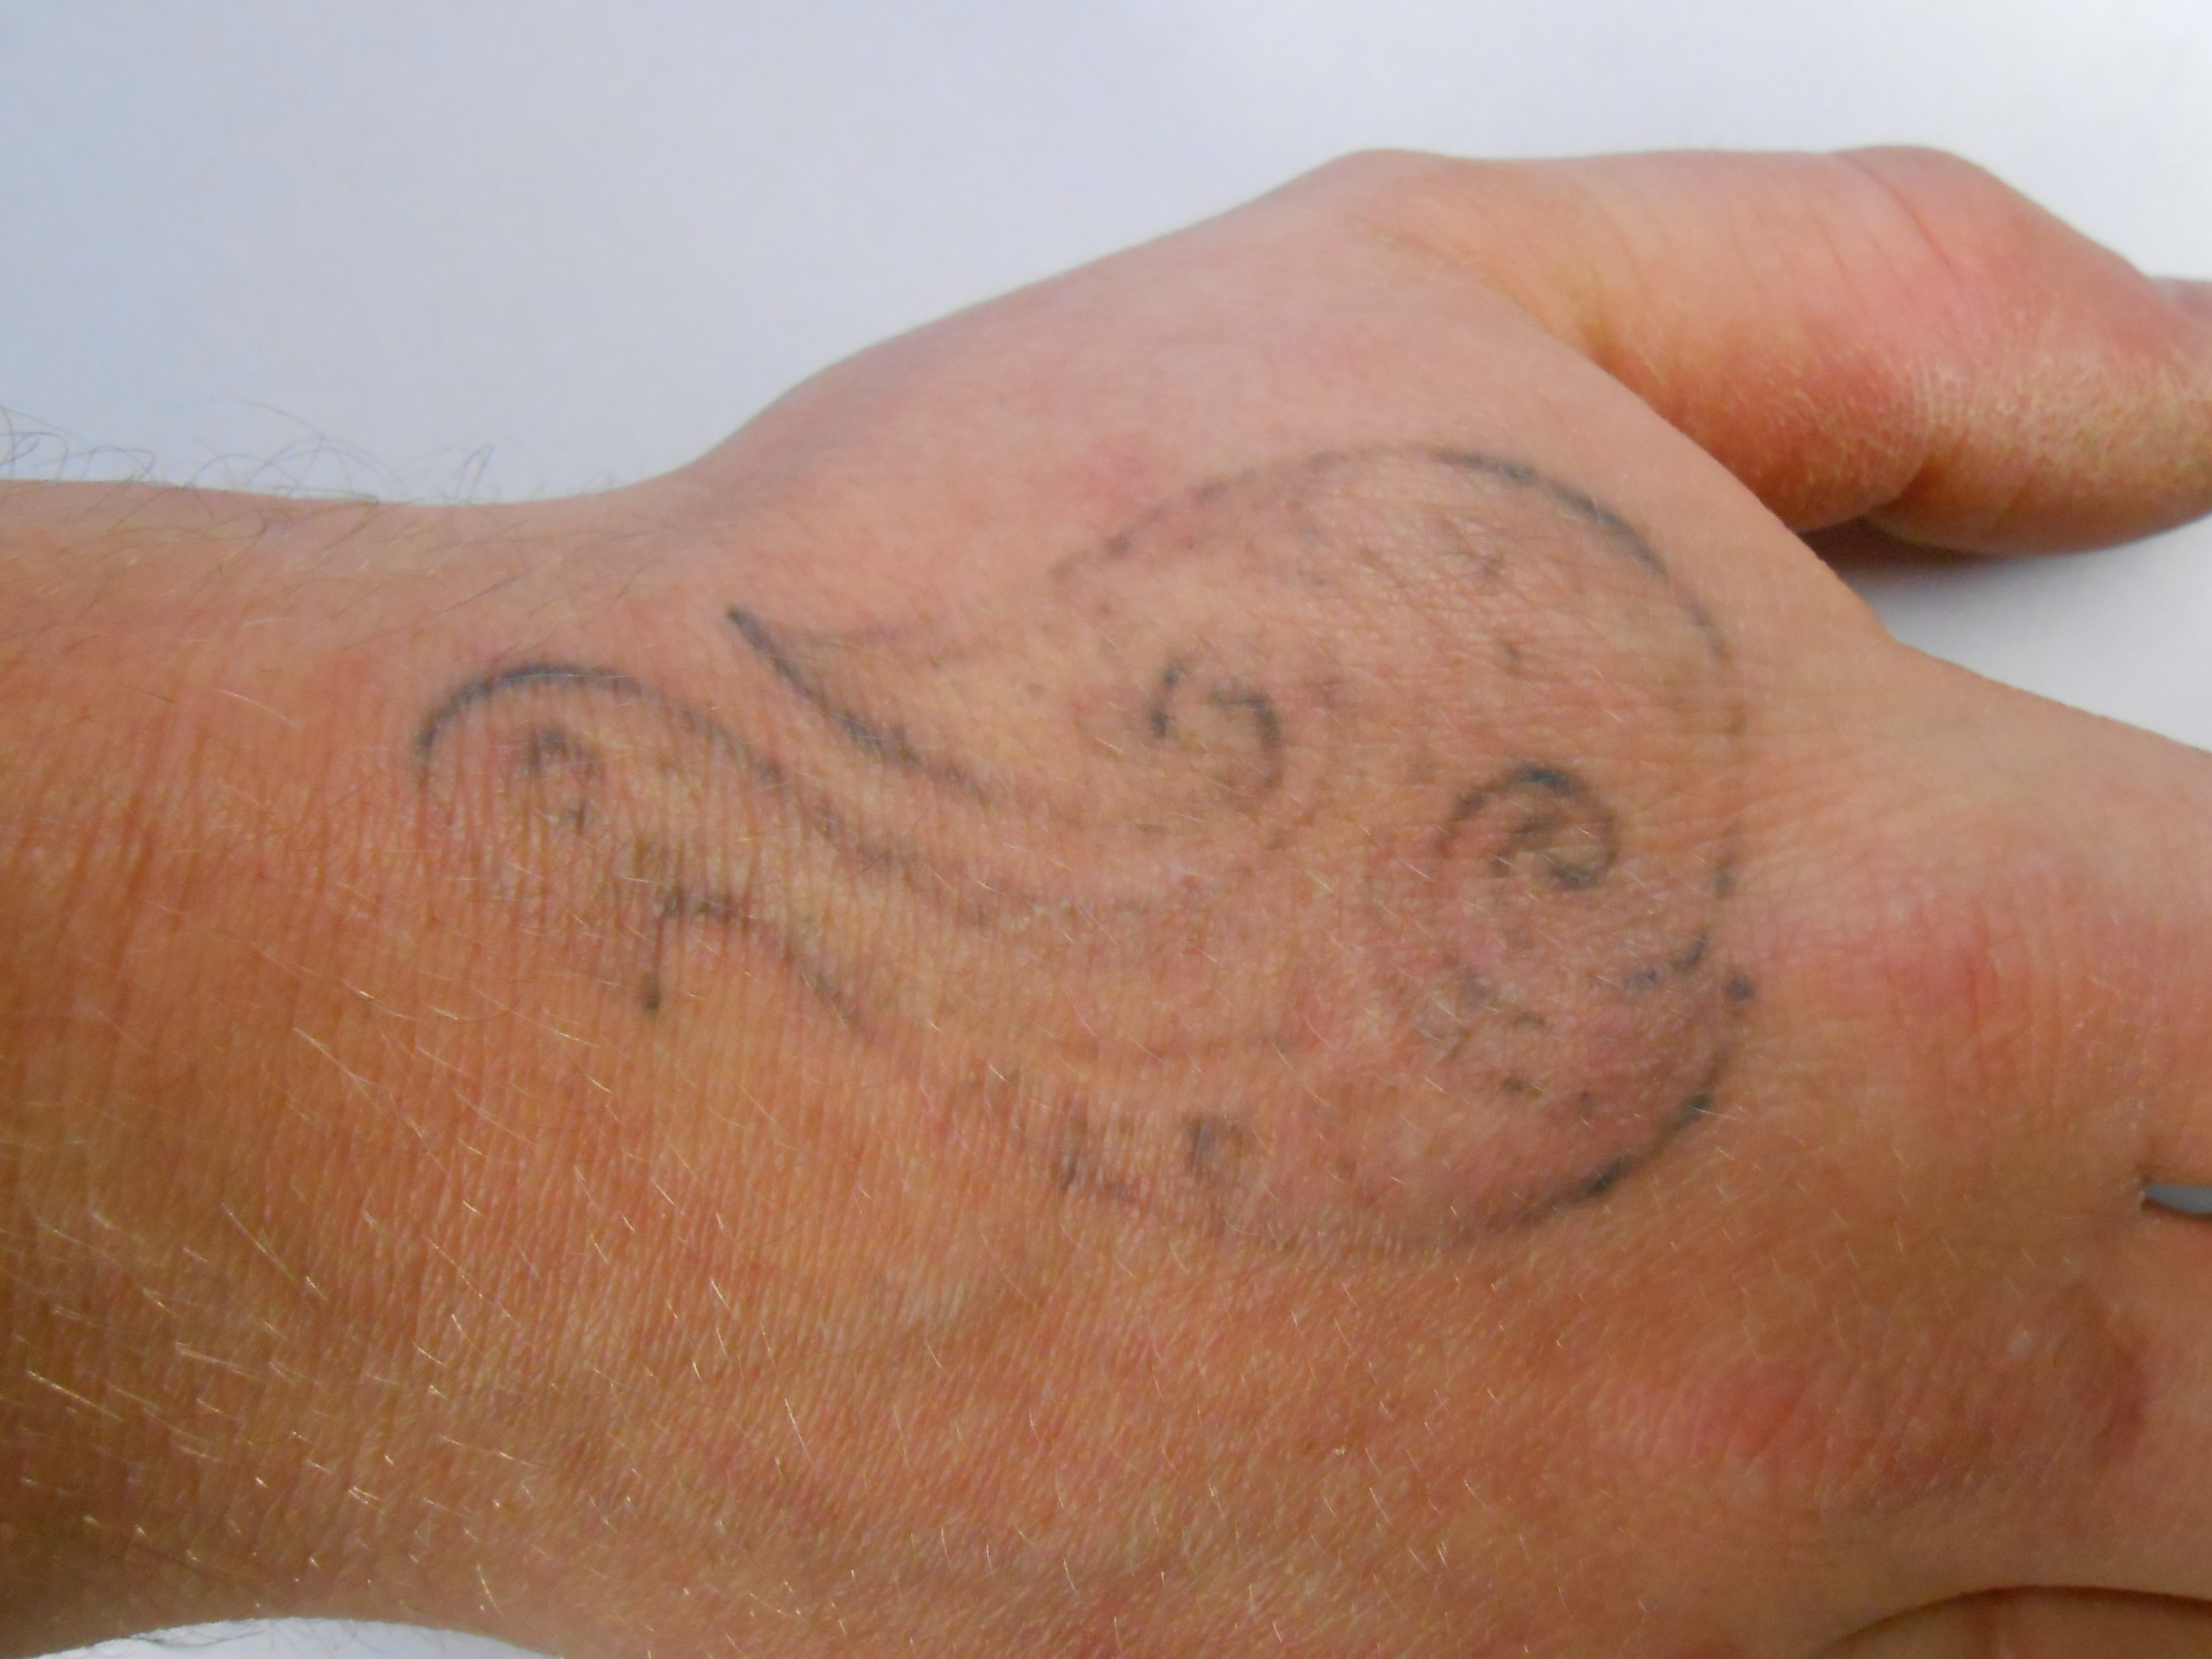 R20 Tattoo Removal Method Is It For You Ideas And Designs